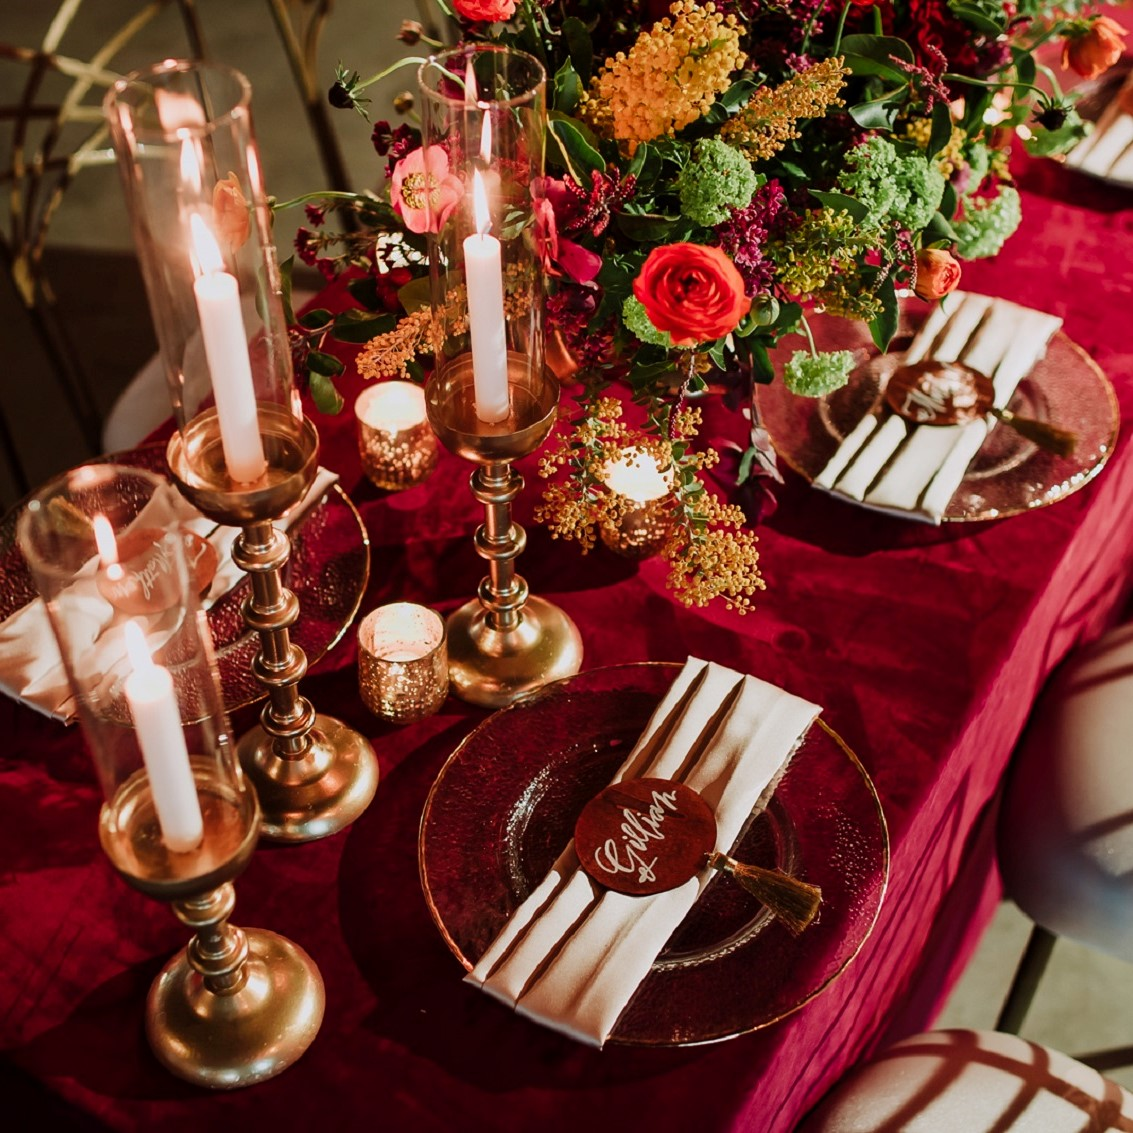 Velvet linen with romantic candles, floral cascade and glass chargers.